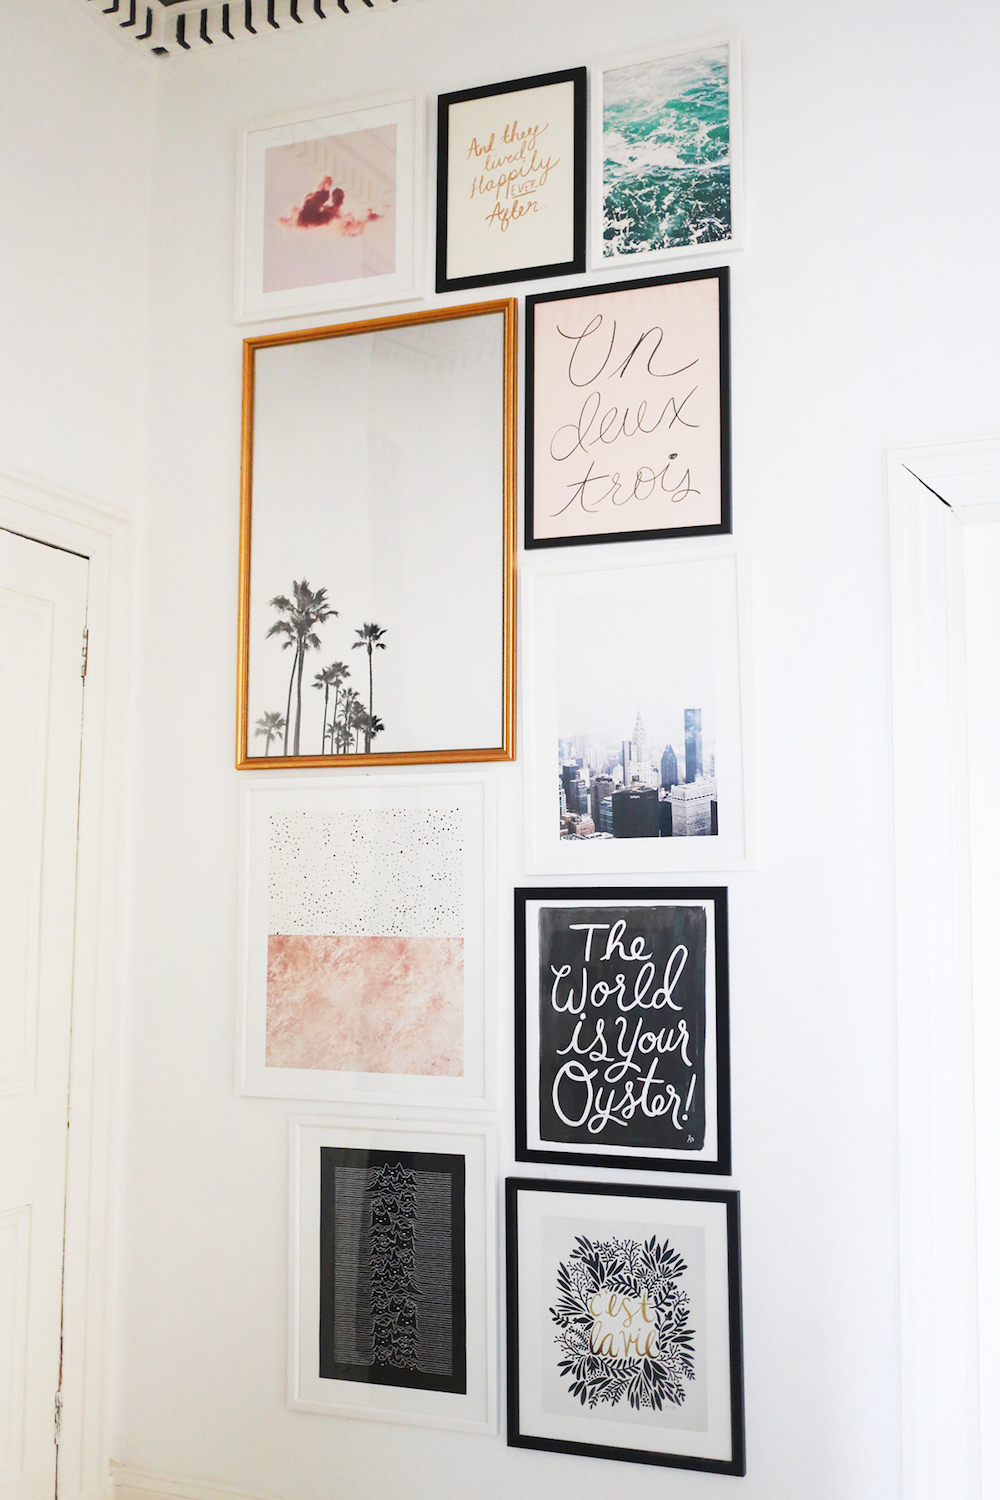 Wall Decor in Kate La Vie's Apartment